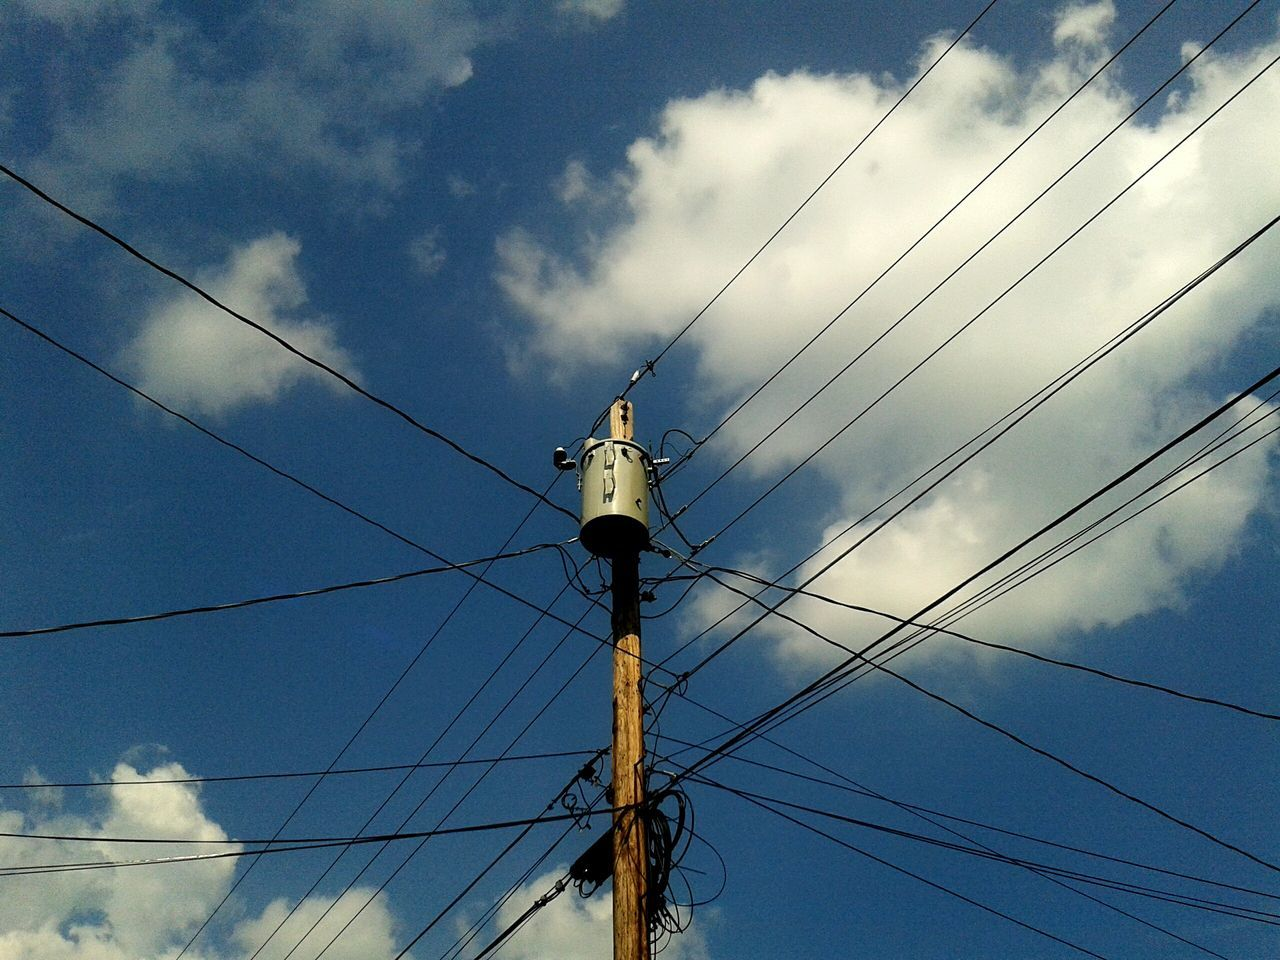 cable, power supply, connection, power line, electricity, low angle view, fuel and power generation, sky, technology, cloud - sky, electricity pylon, day, complexity, no people, outdoors, telephone line, animal themes, animals in the wild, bird, perching, nature